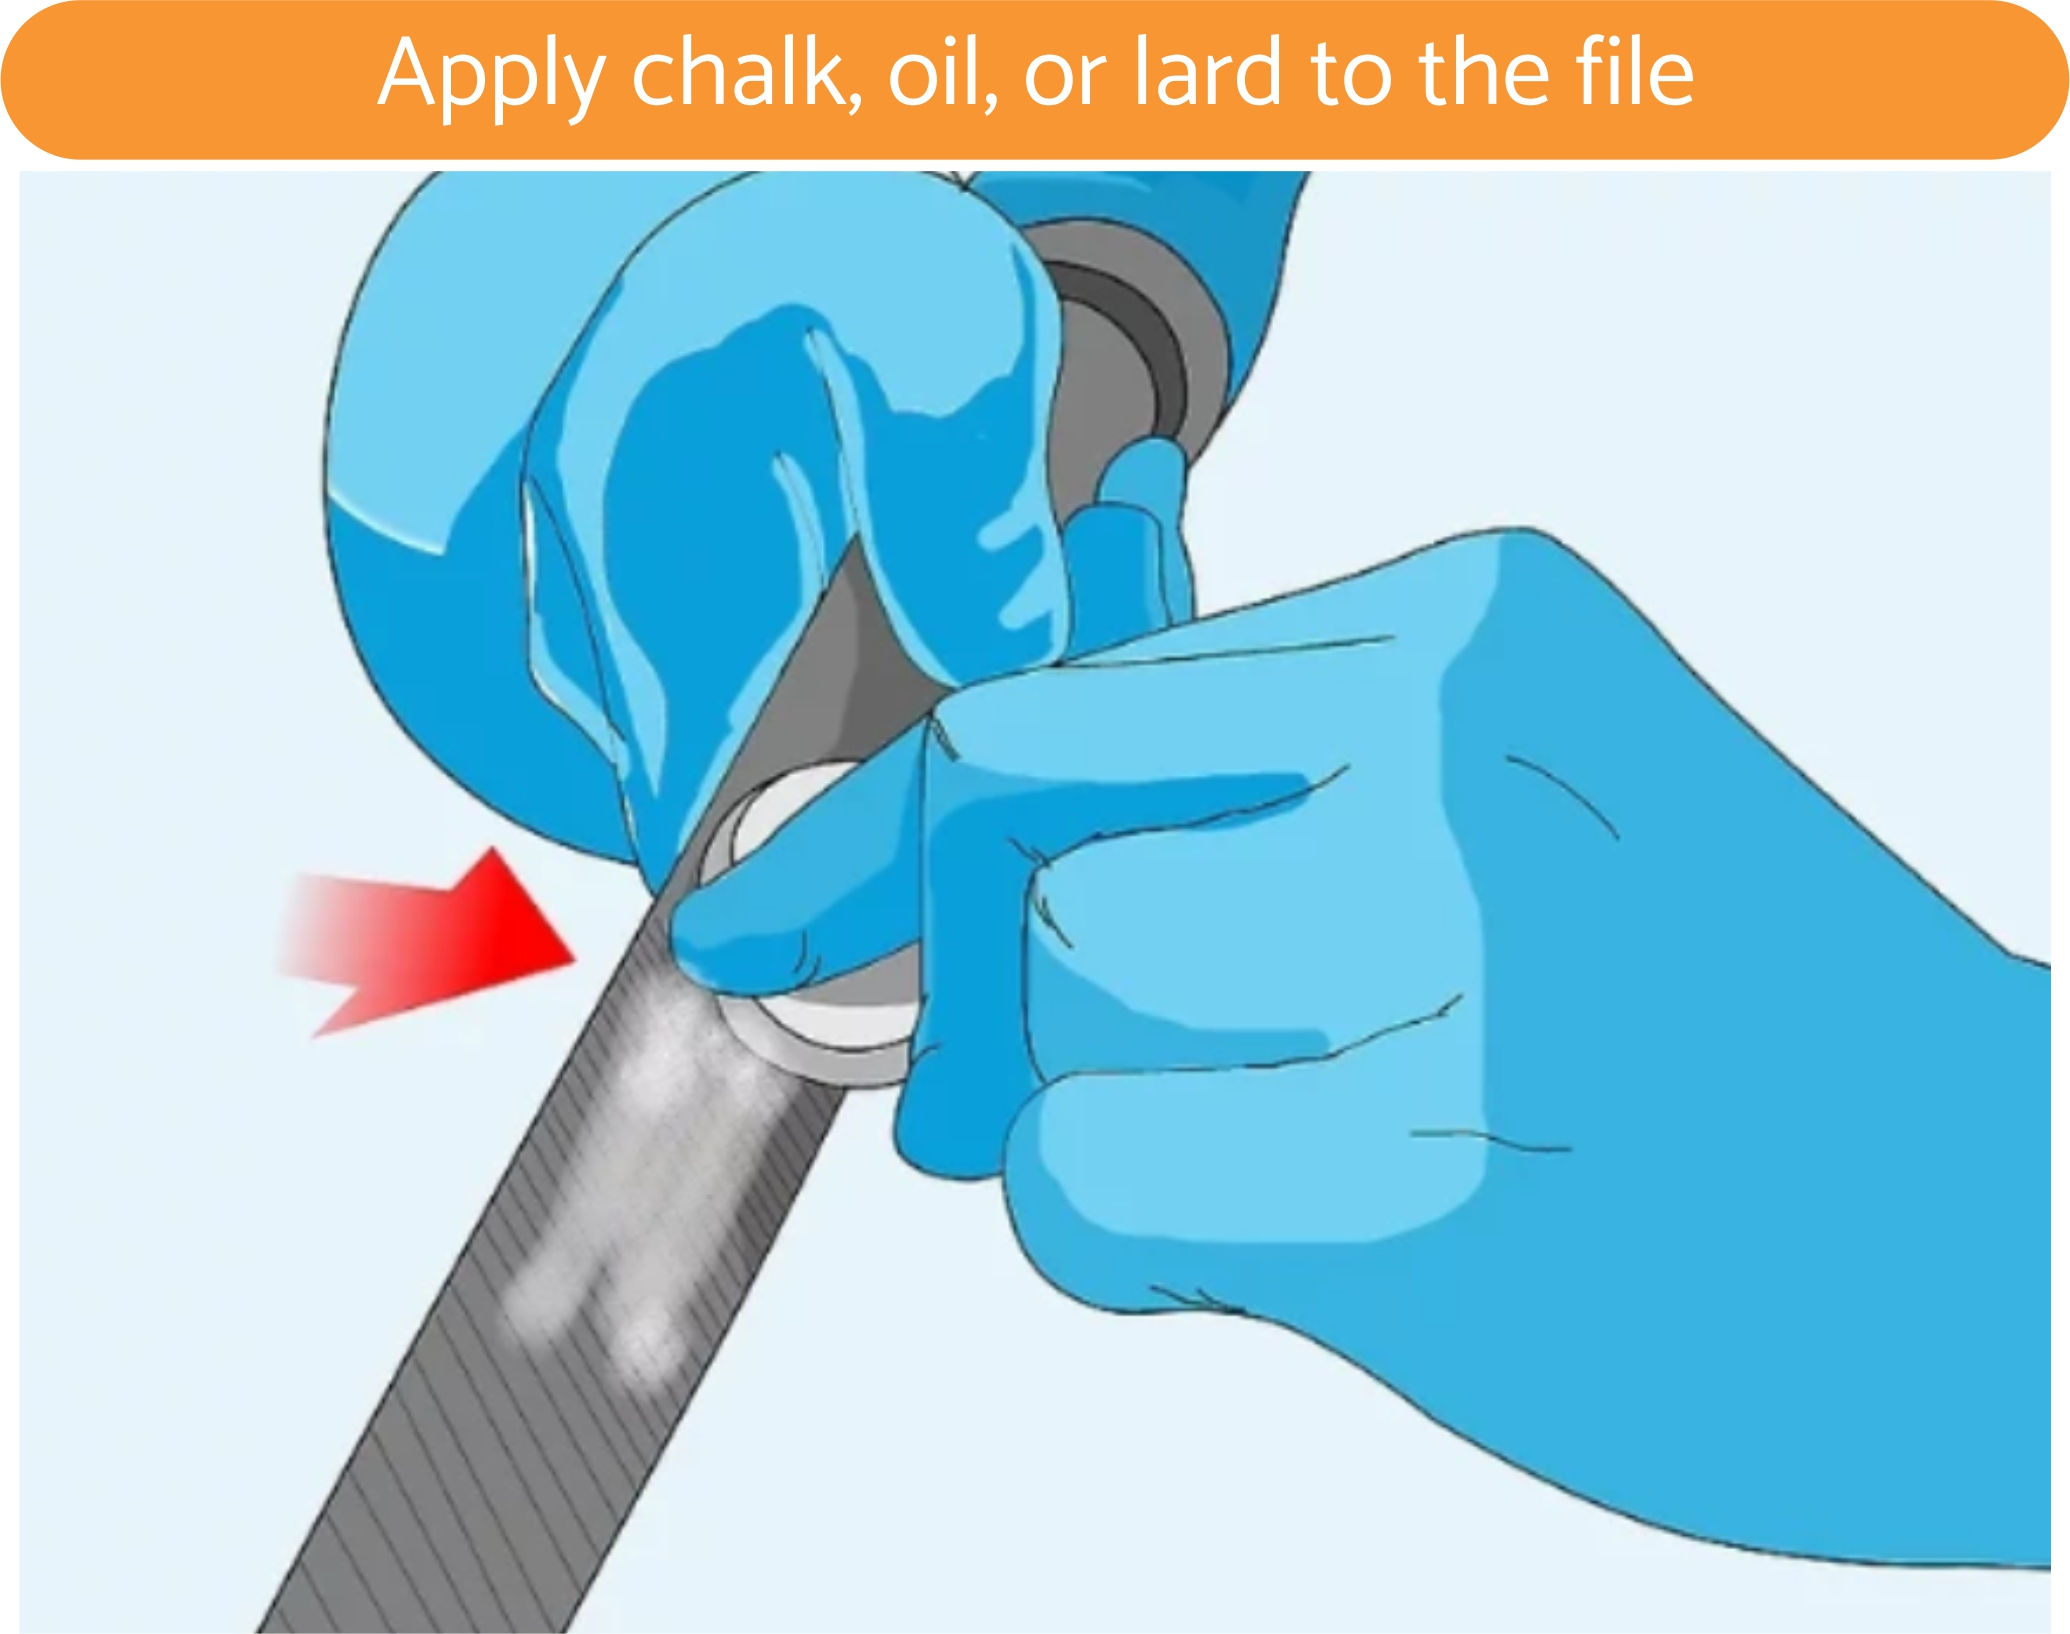 Apply chalk, oil, or lard to the file